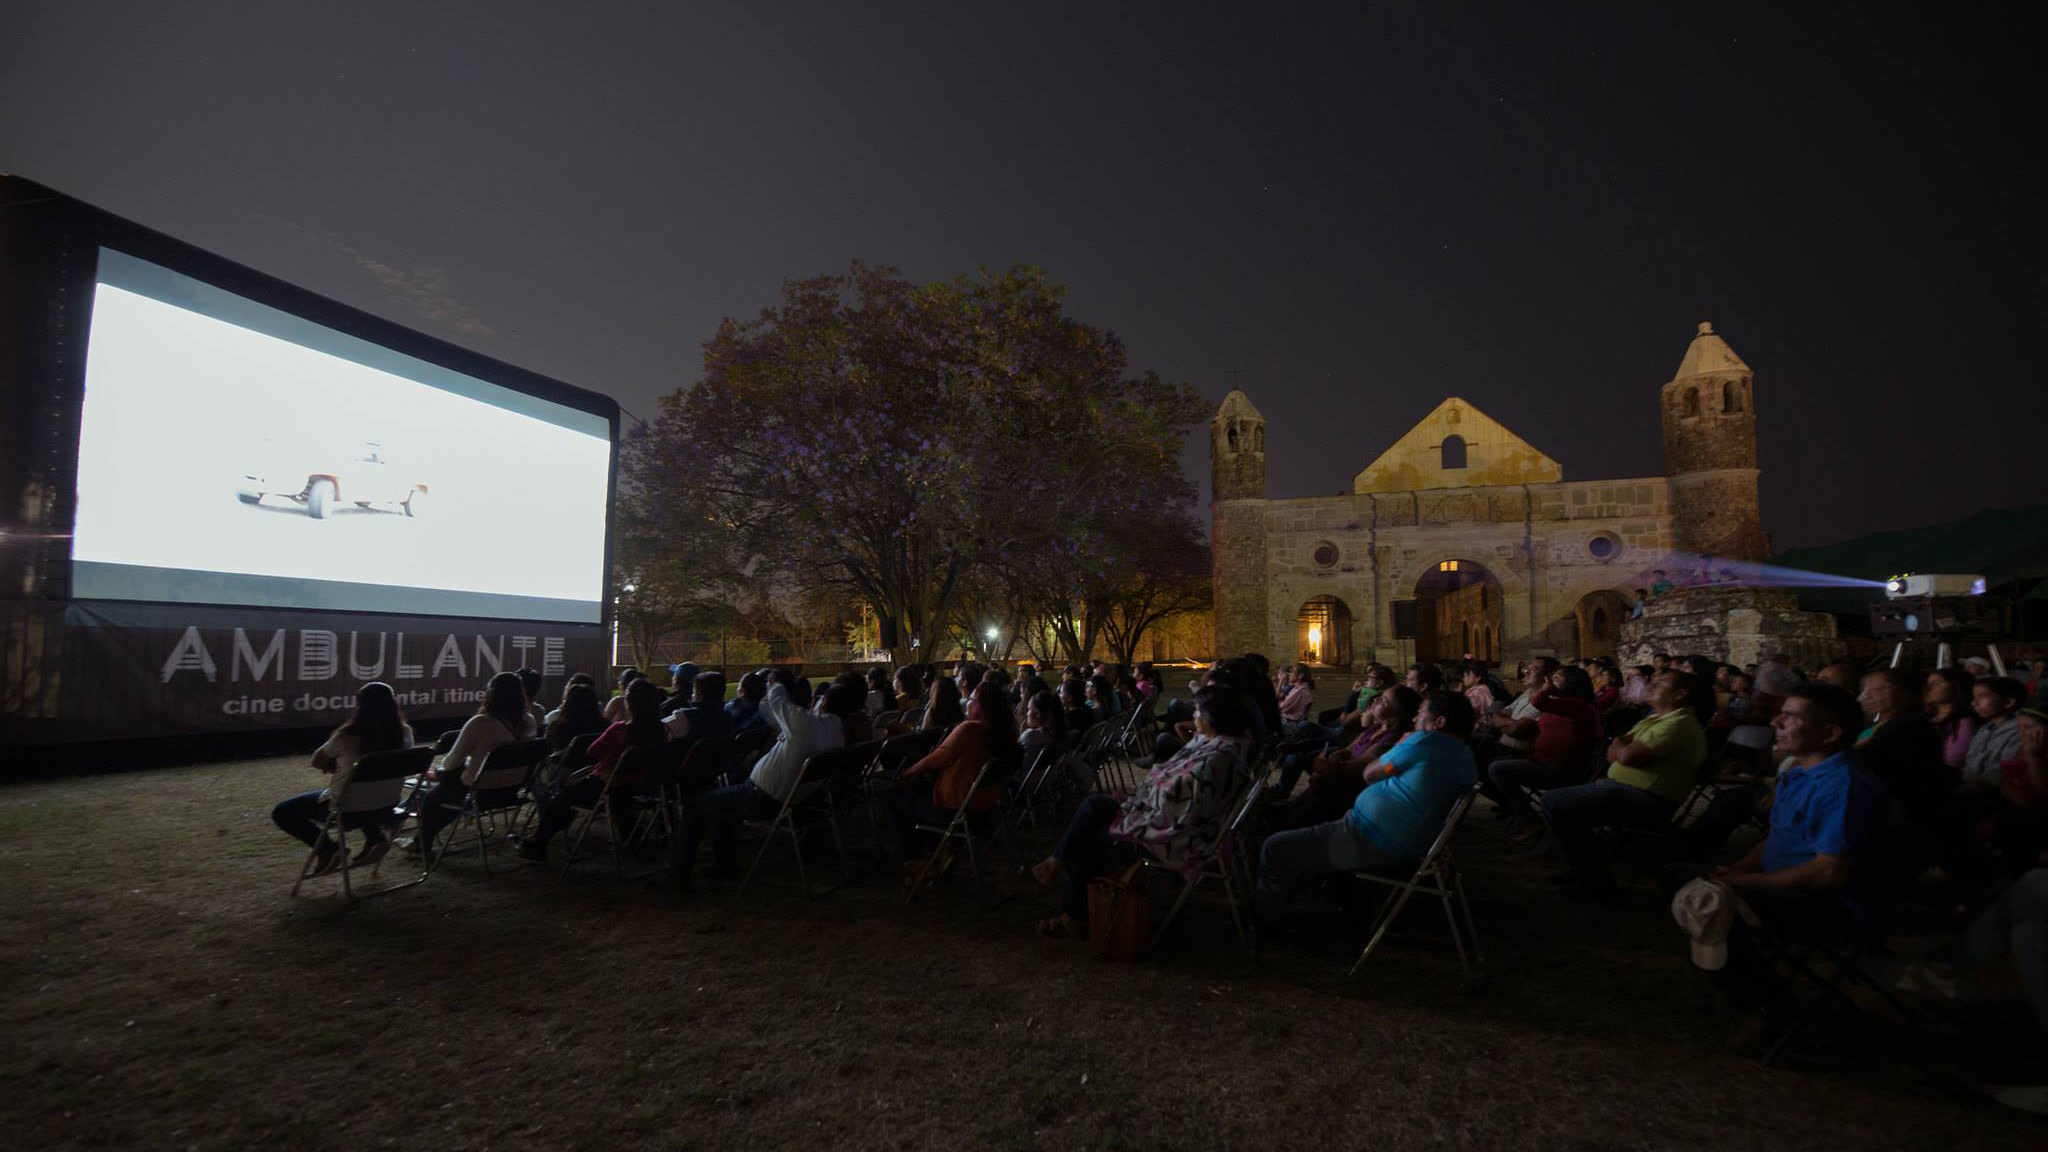 Festival Ambulante: descubrir, compartir y transformar